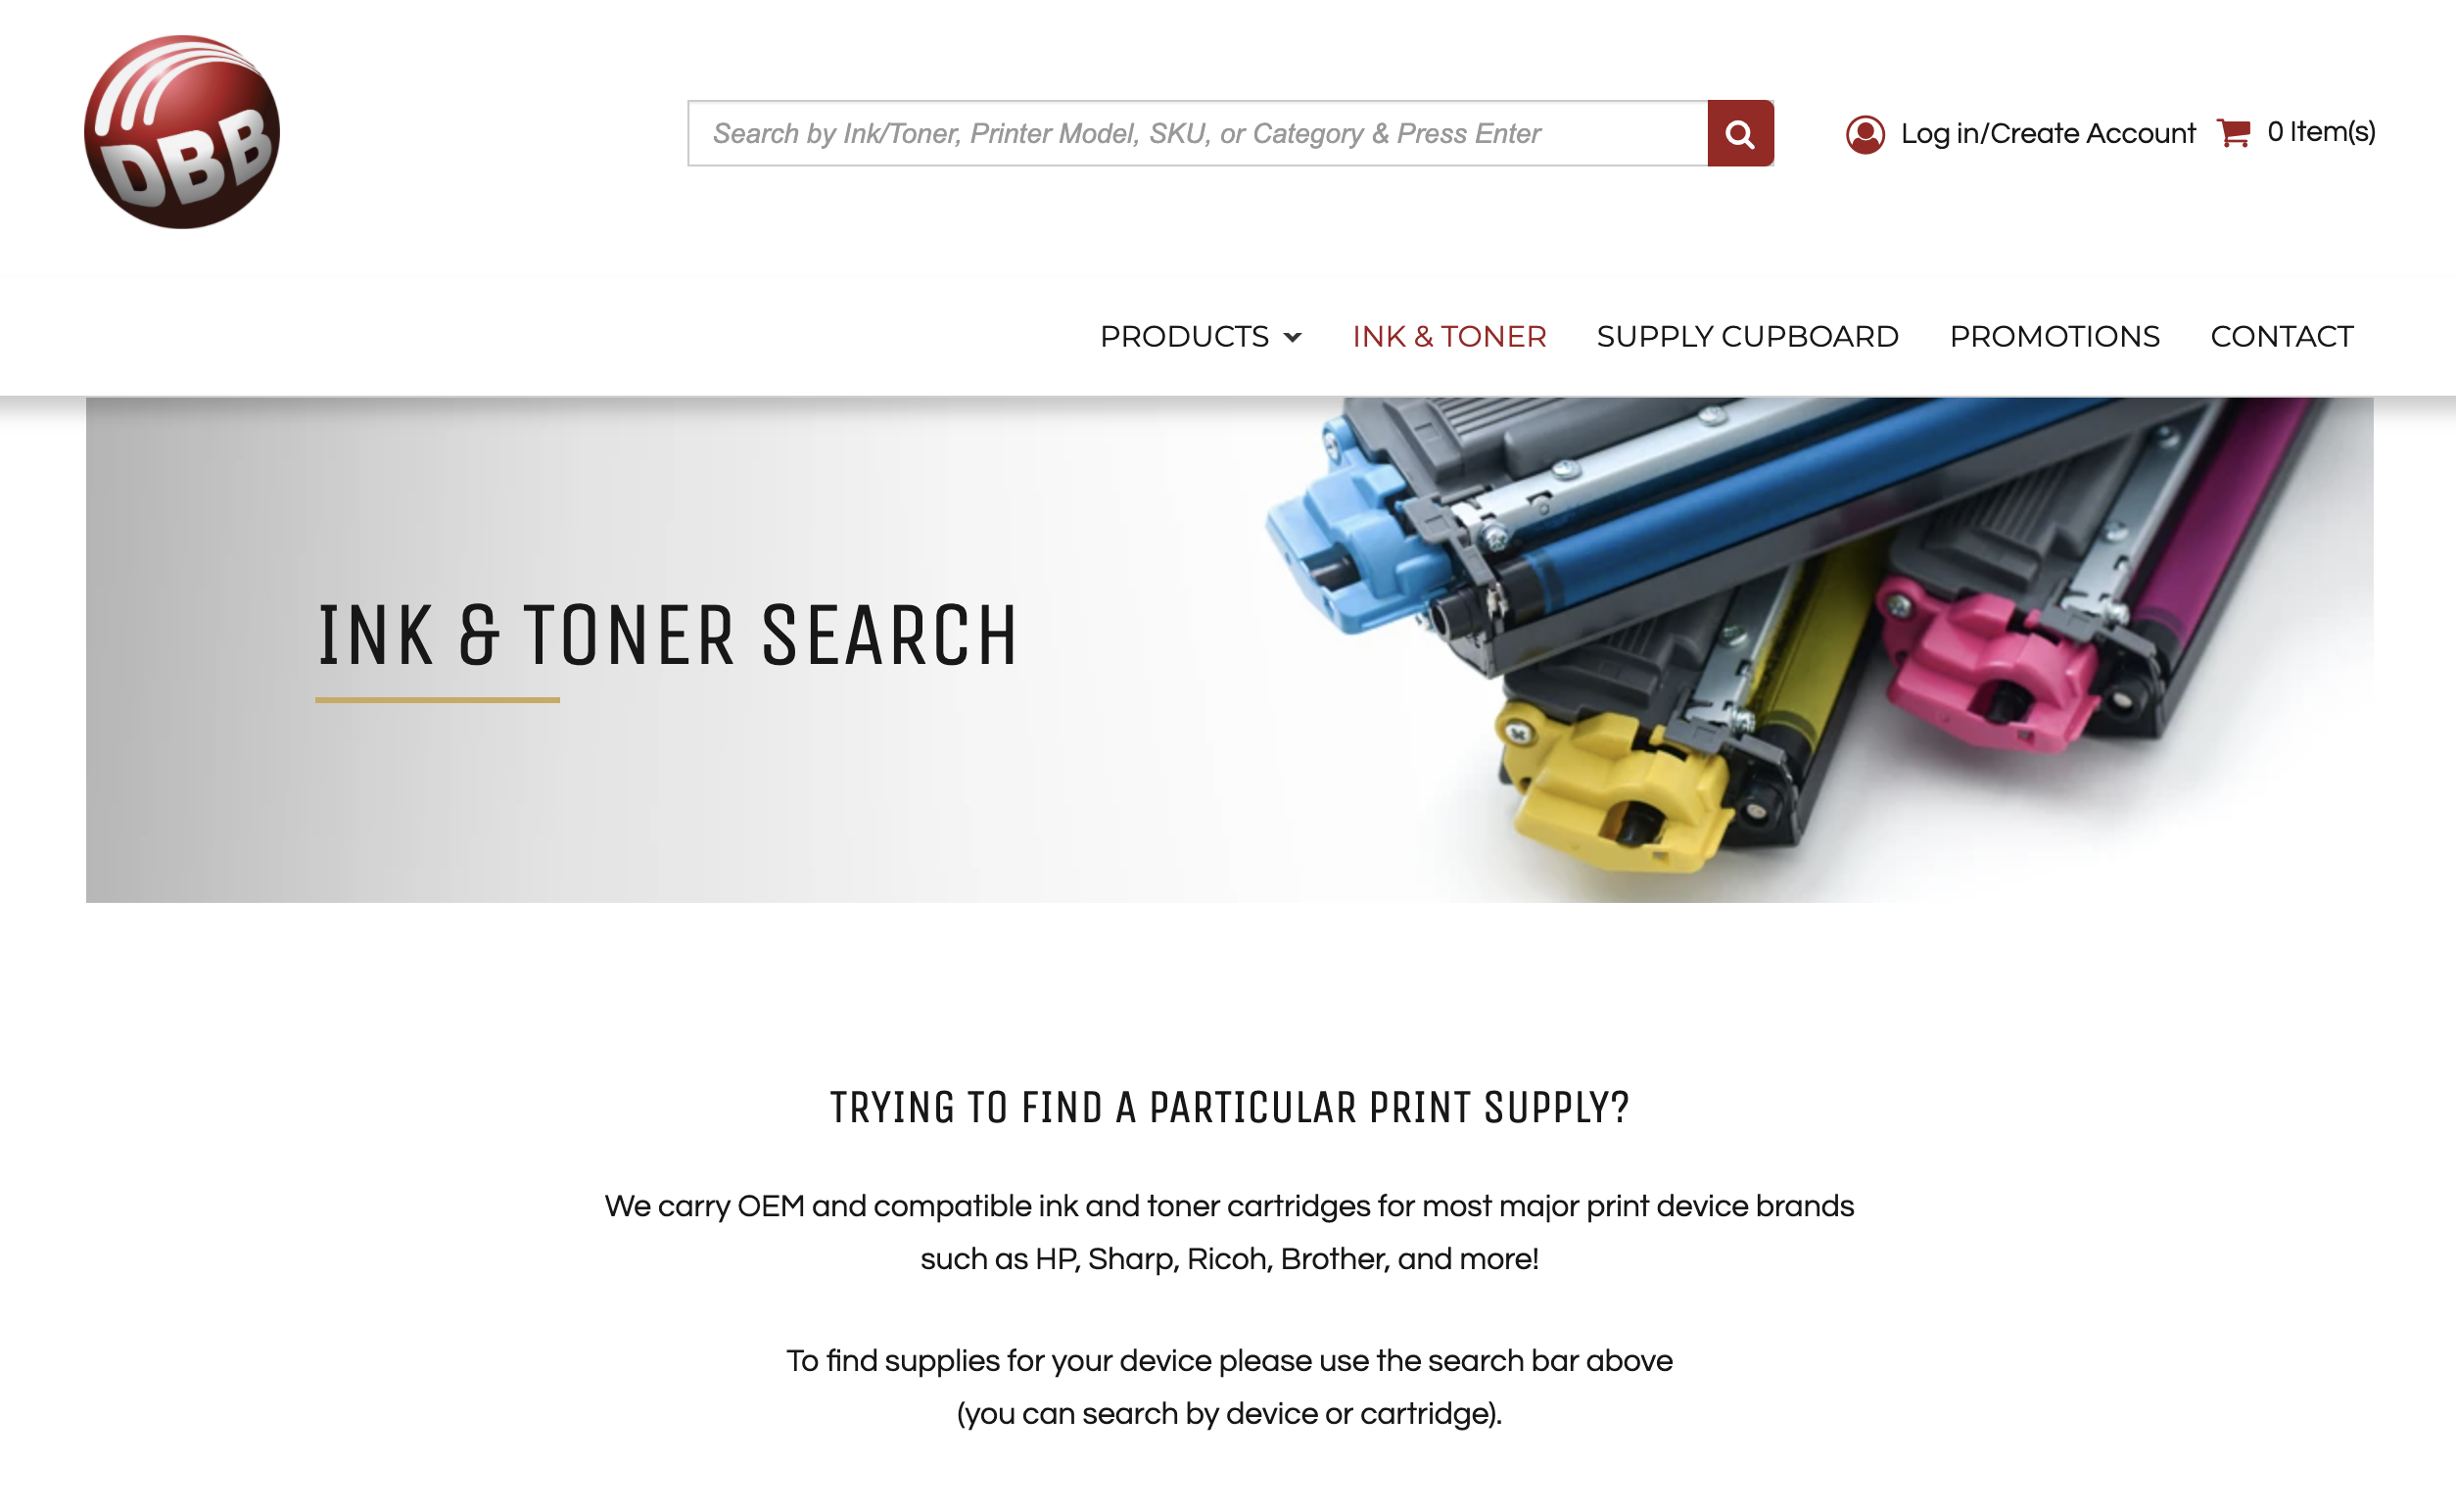 Ink and Toner Search